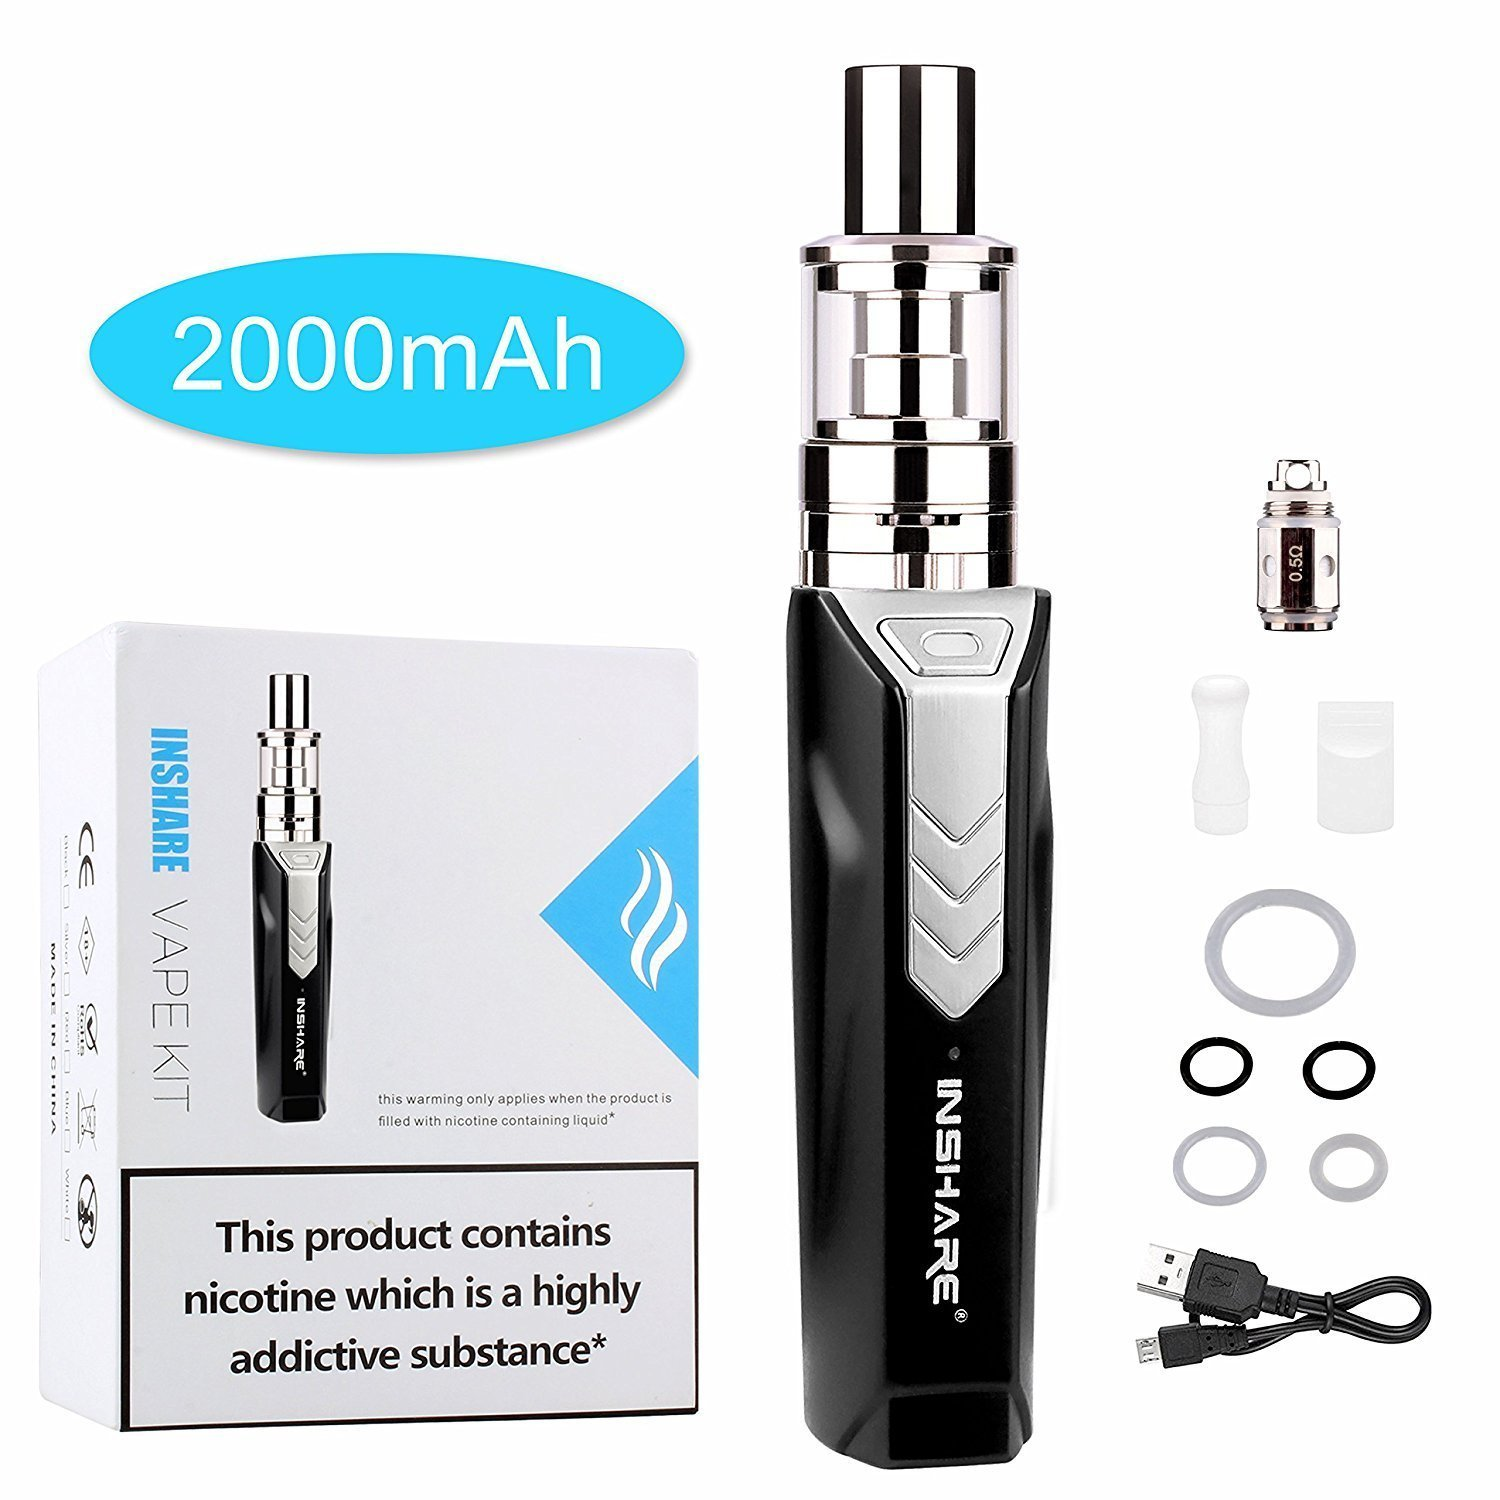 INSHARE® E Cigarette 50W Vape Kit  Box Mod Vape  Stylish Design 2000mAh  Long-lasting Huge Vapour Electronic Cigarette Vape Pen Kit  Micro USB